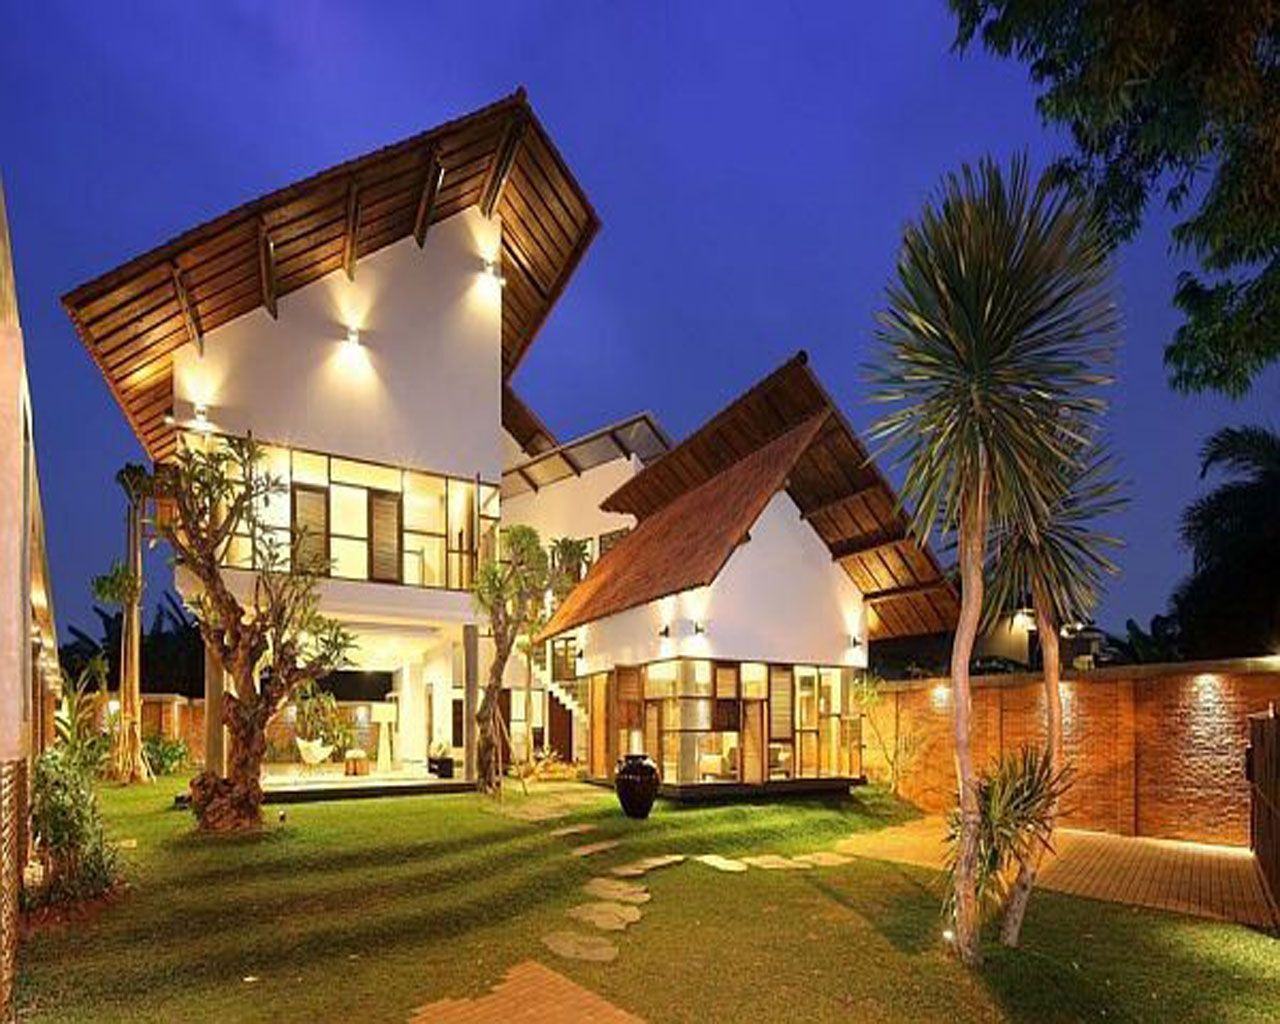 Fascinating Tropical Roof Design Representing Elegant